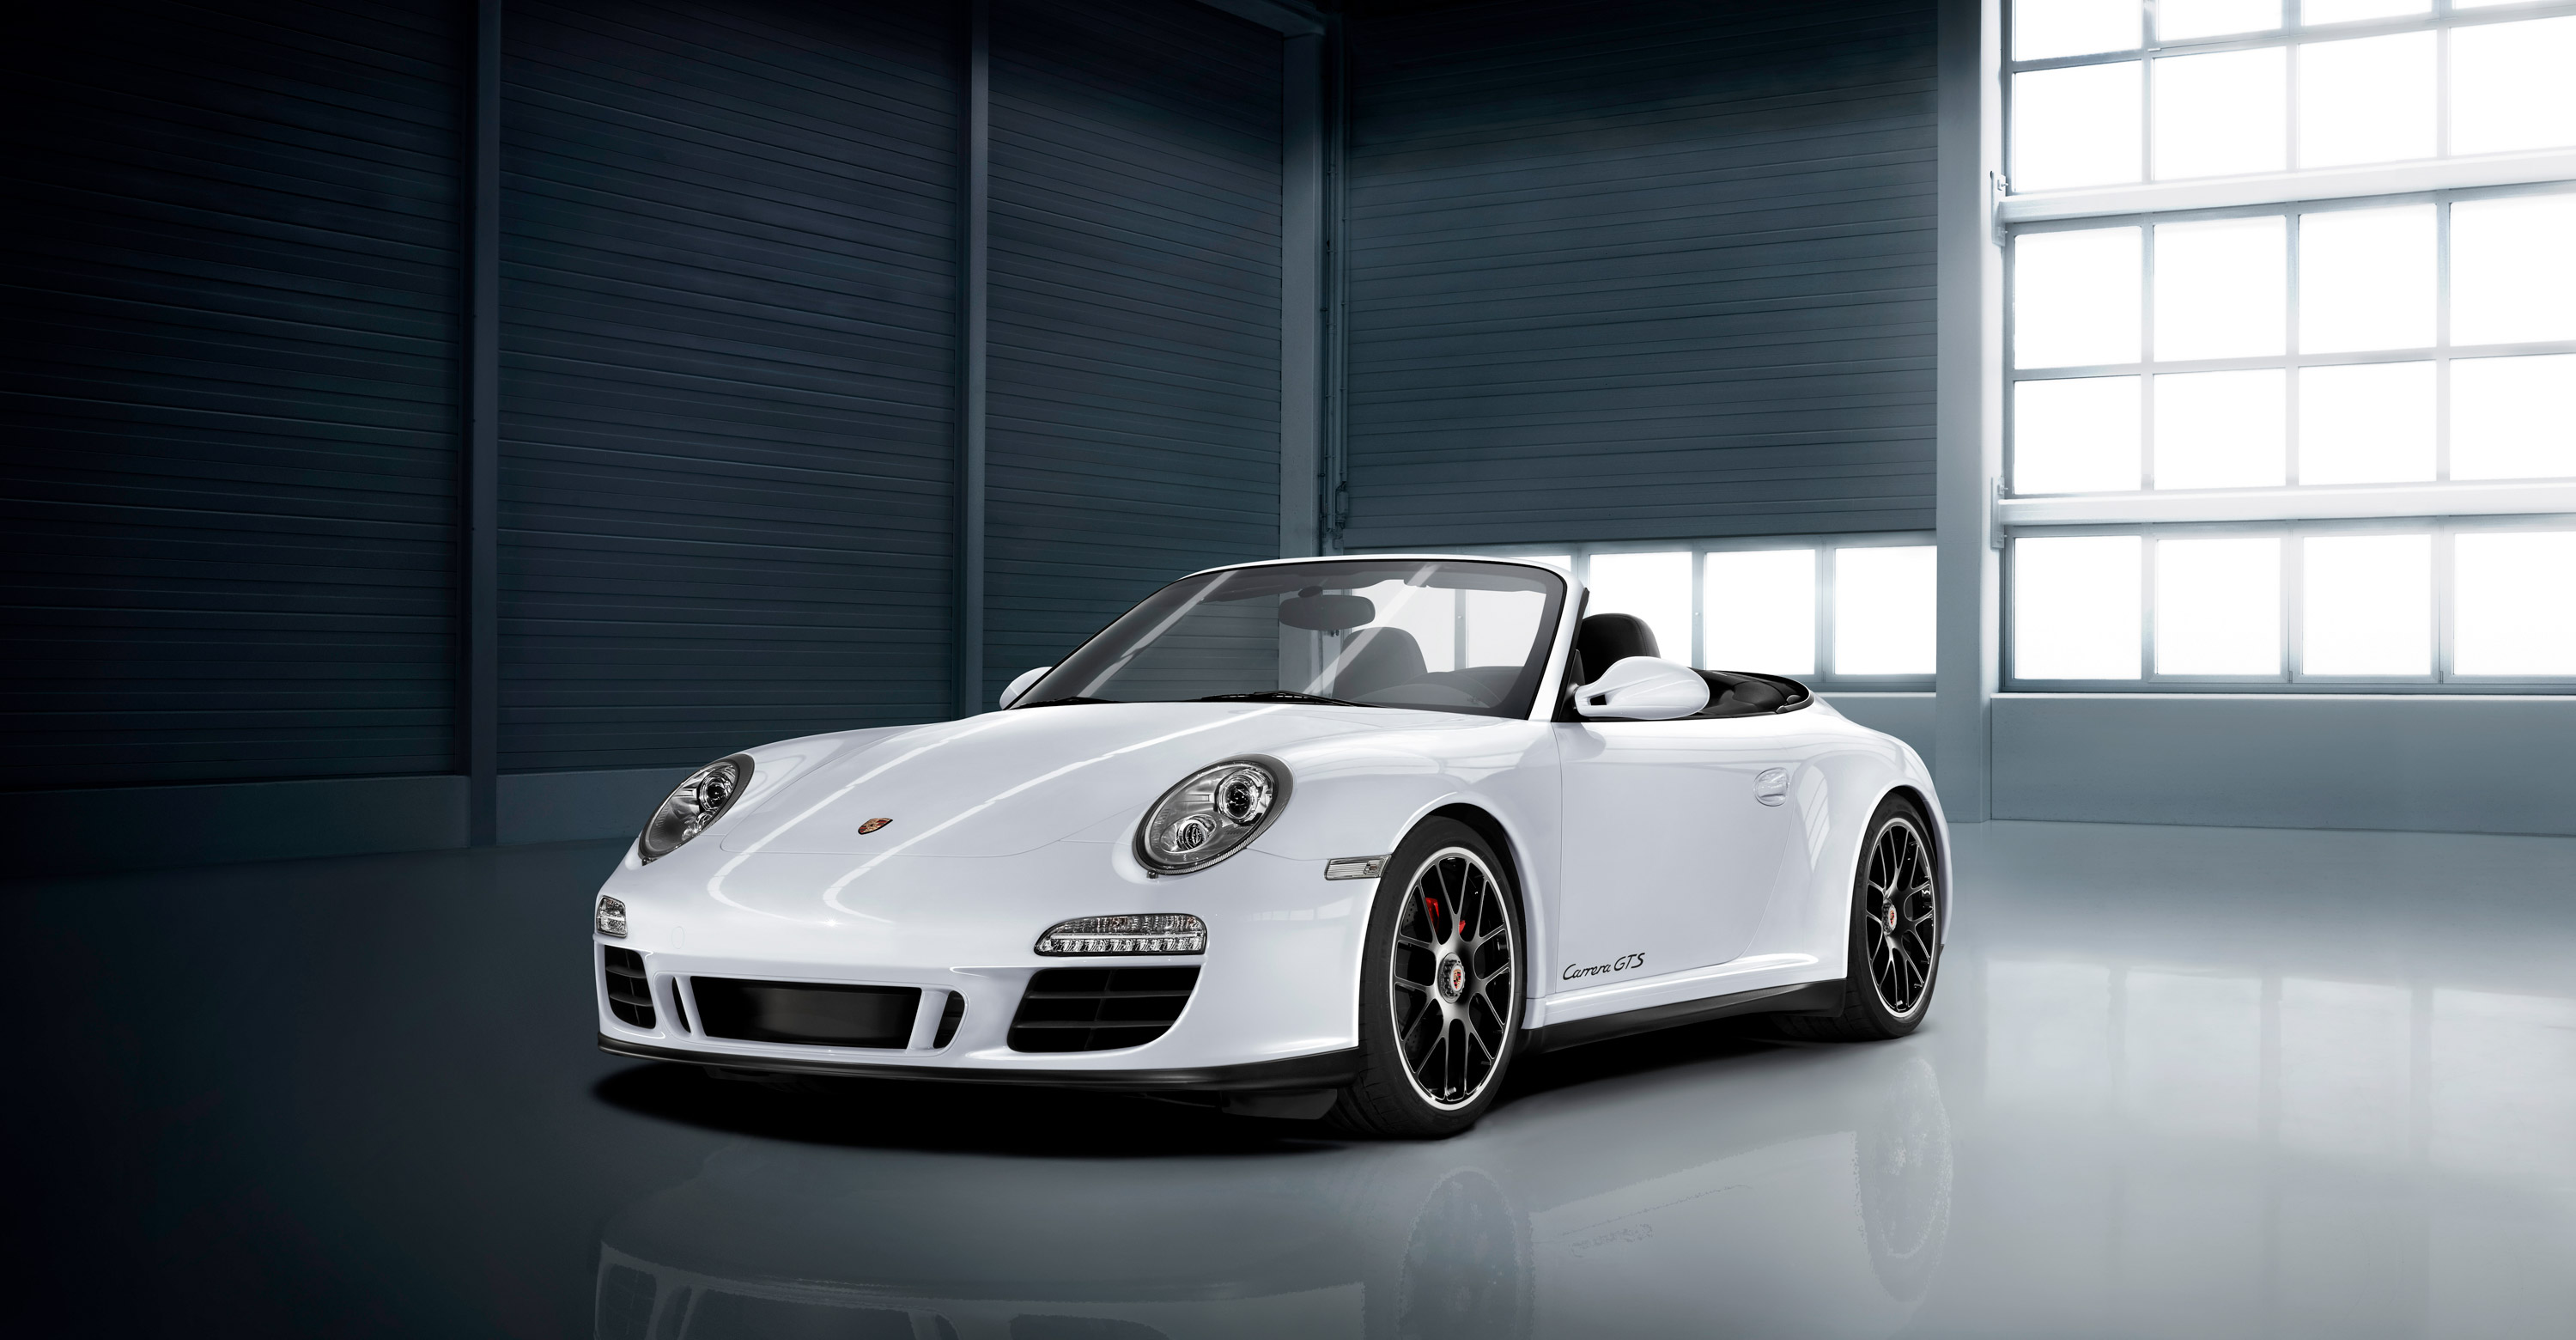 Porsche Panamera Lease >> 2011 White Porsche 911 Carrera GTS Cabriolet wallpapers